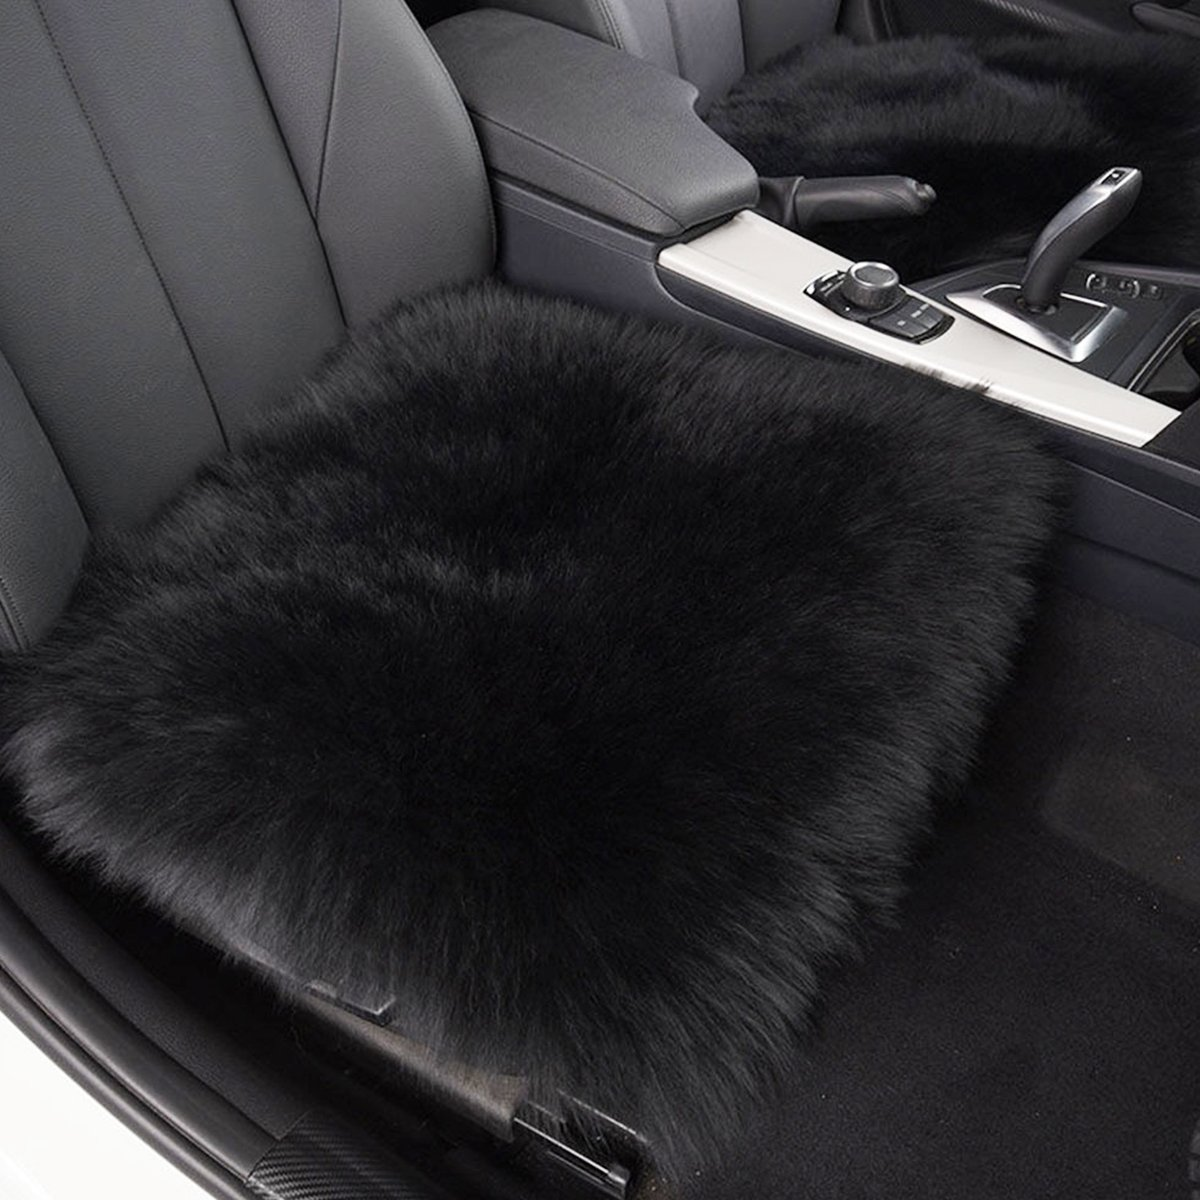 Premium Quality Black Comfortable and Breathable Car Seat cushions for Automobile Zone Tech Faux Wool Seat cushion Office and Home